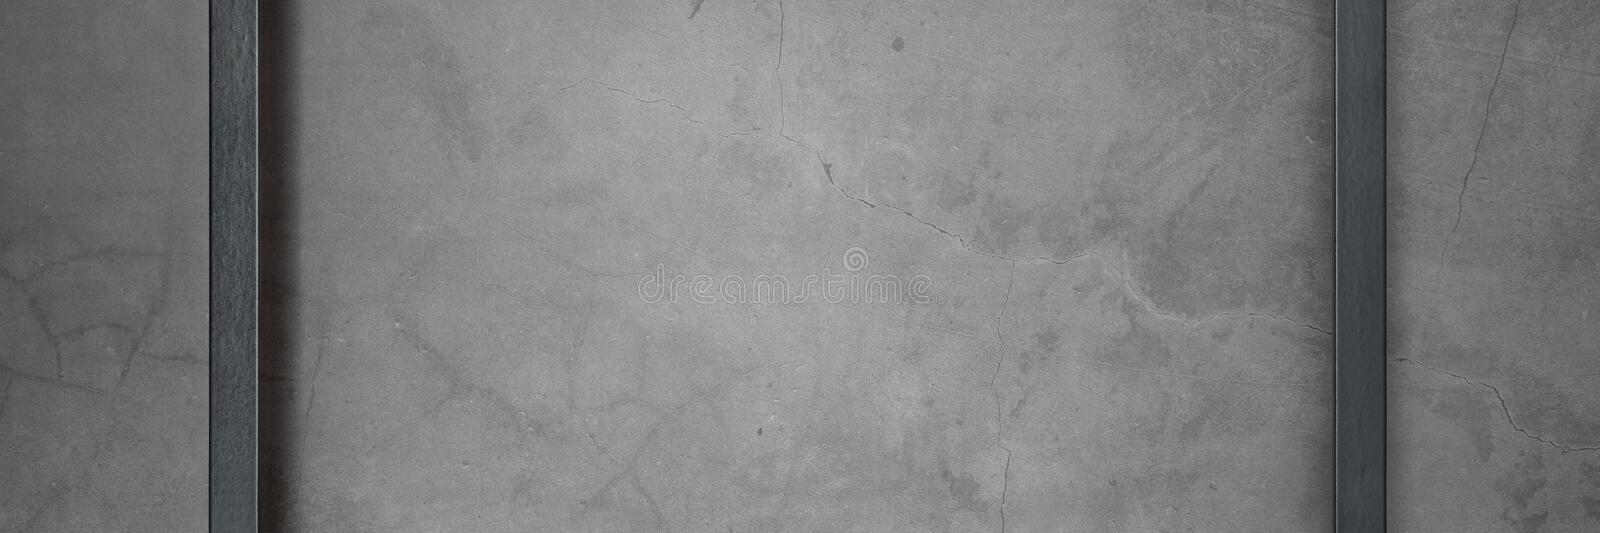 Dark frame for painting on a gray cement textured background royalty free stock images